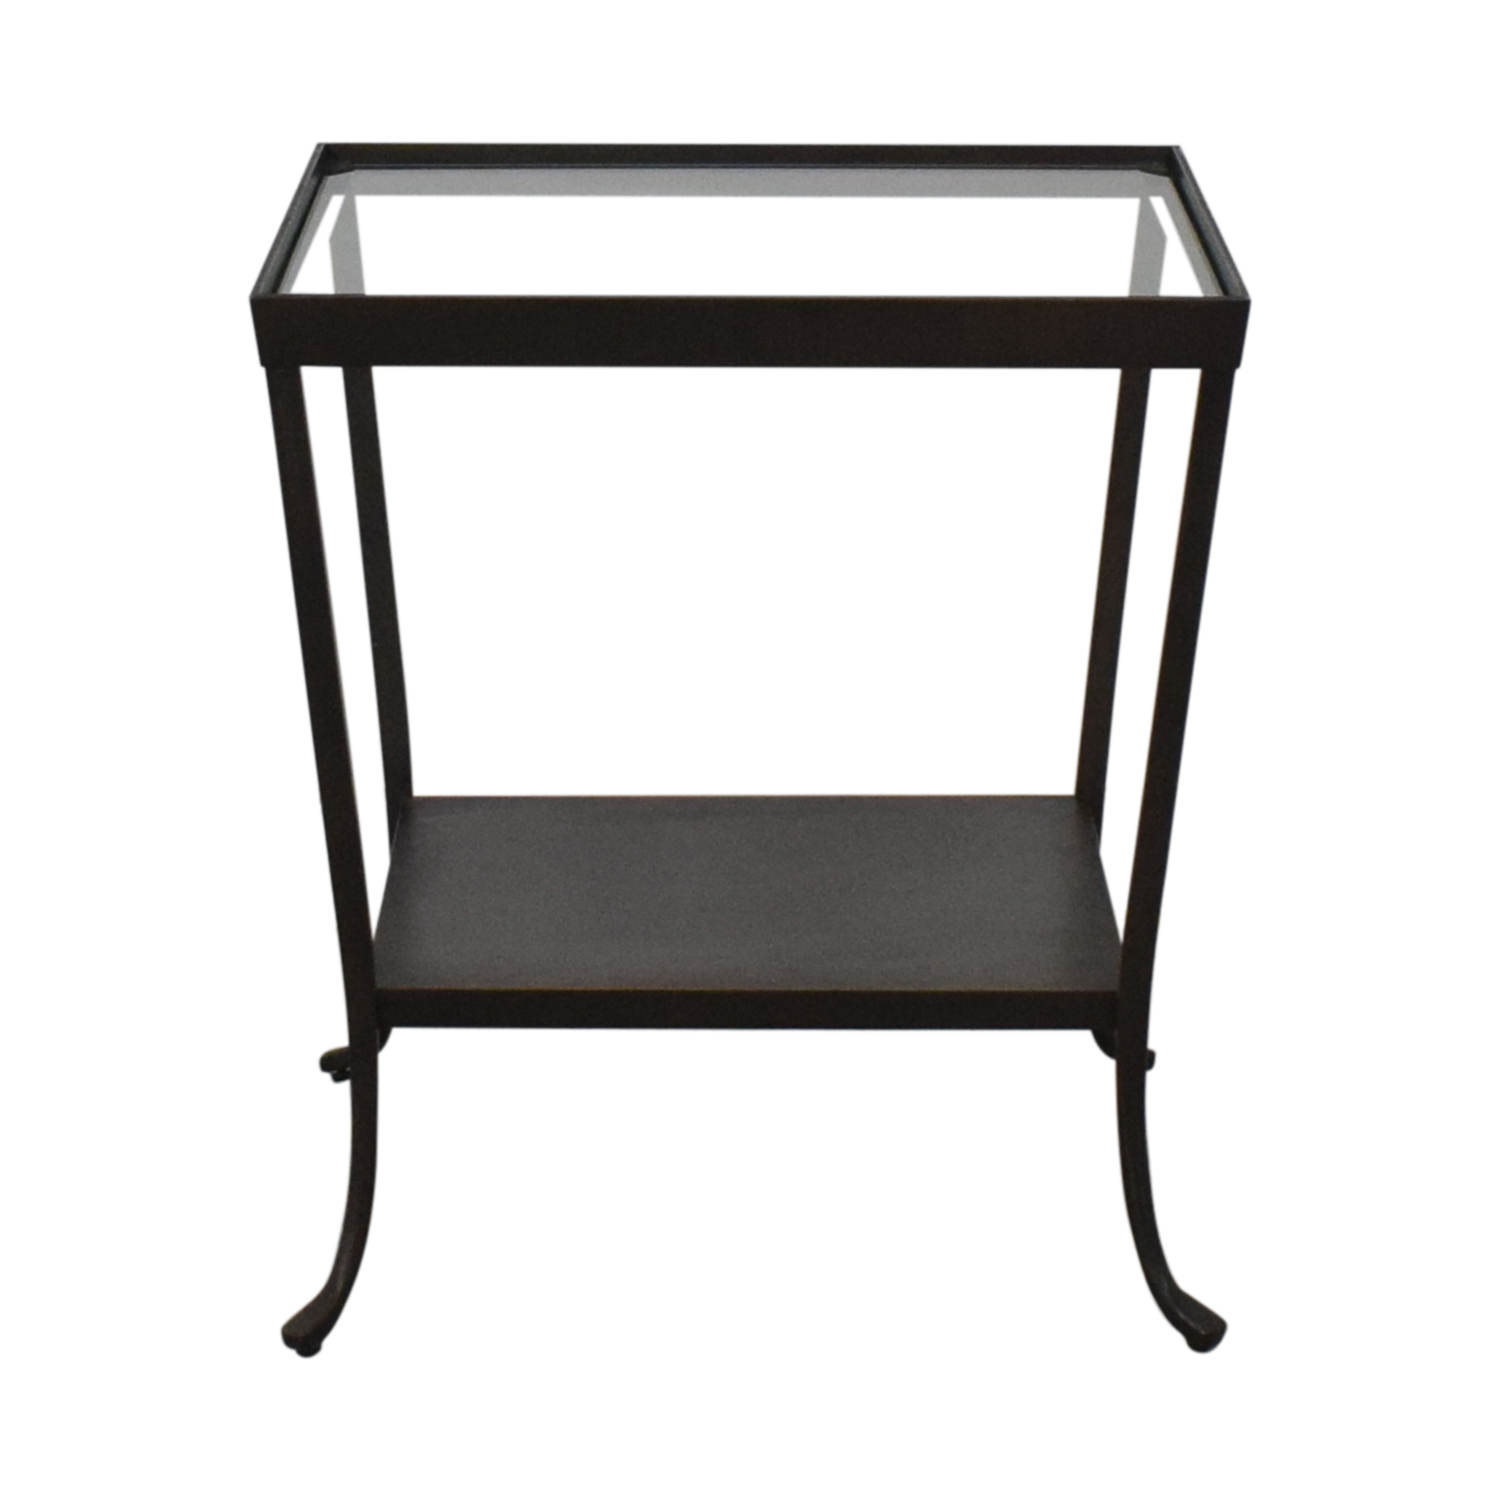 Metal Glass End Tables 68 Off Crate Barrel Crate Barrel Square Glass Metal Accent End Table Tables